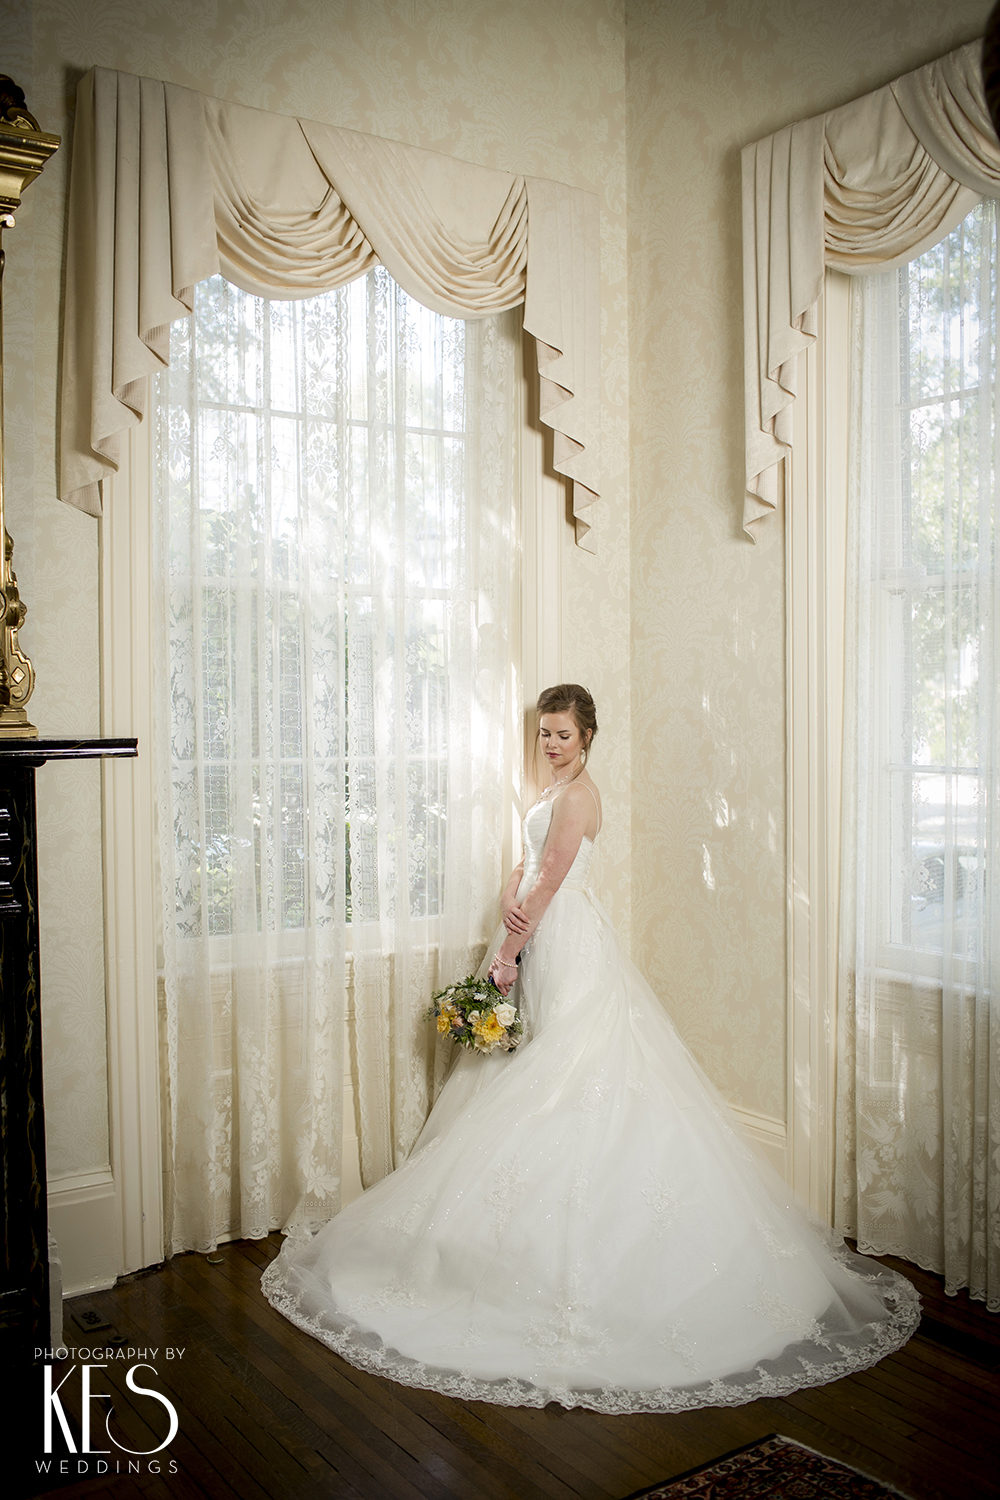 KES Weddings Trapnall Hall Bridals and PVCC2.JPG